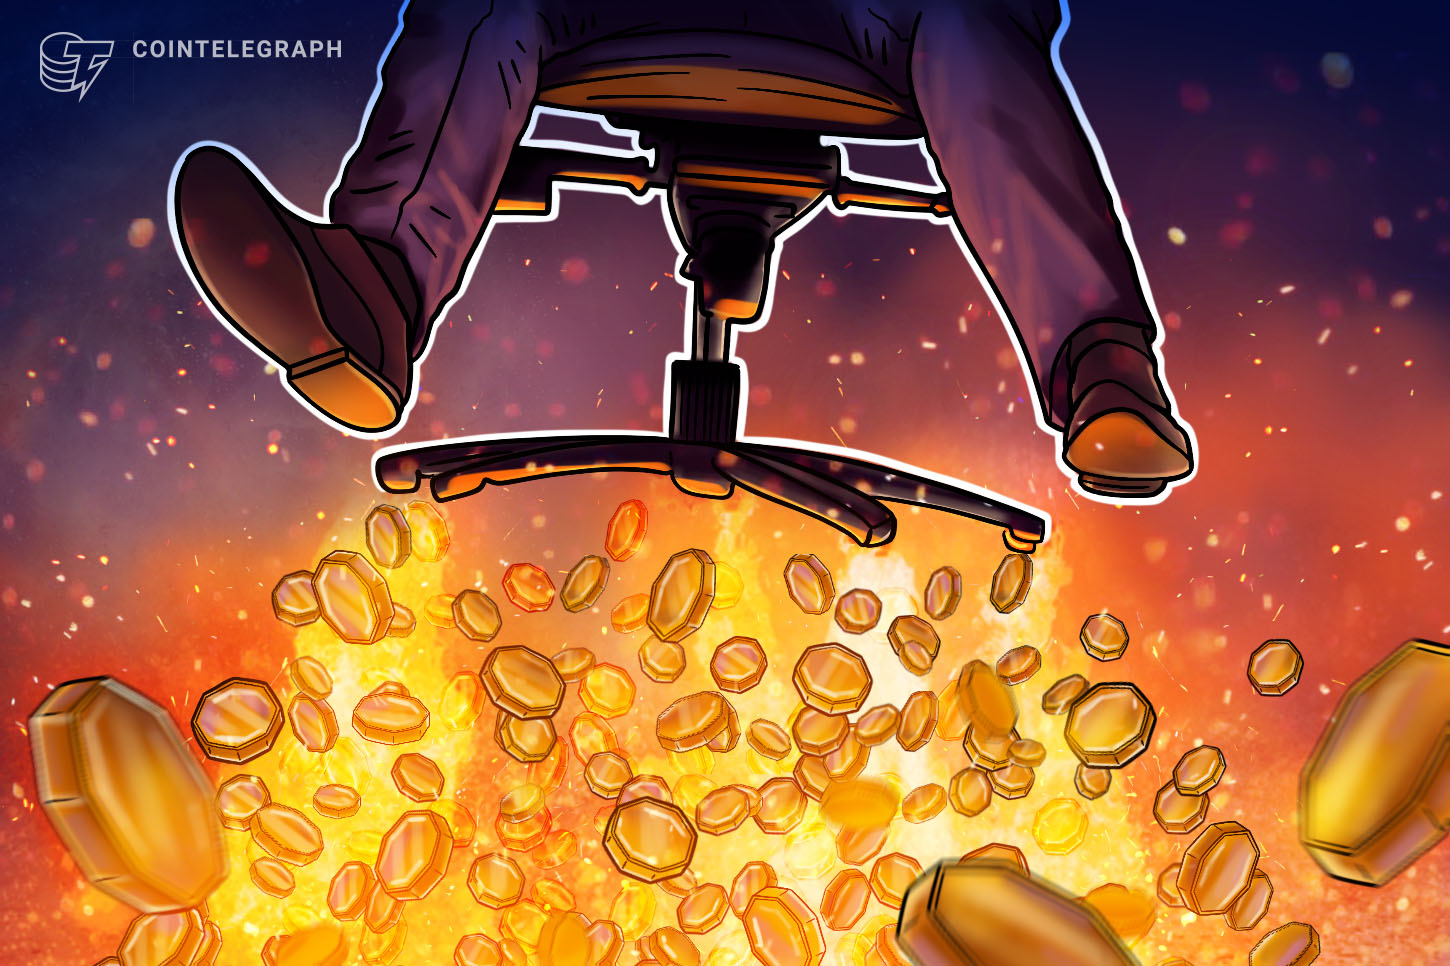 QuickSwap (QUICK) gains 420% as Polygon's (MATIC) L2 network attracts new liquidity